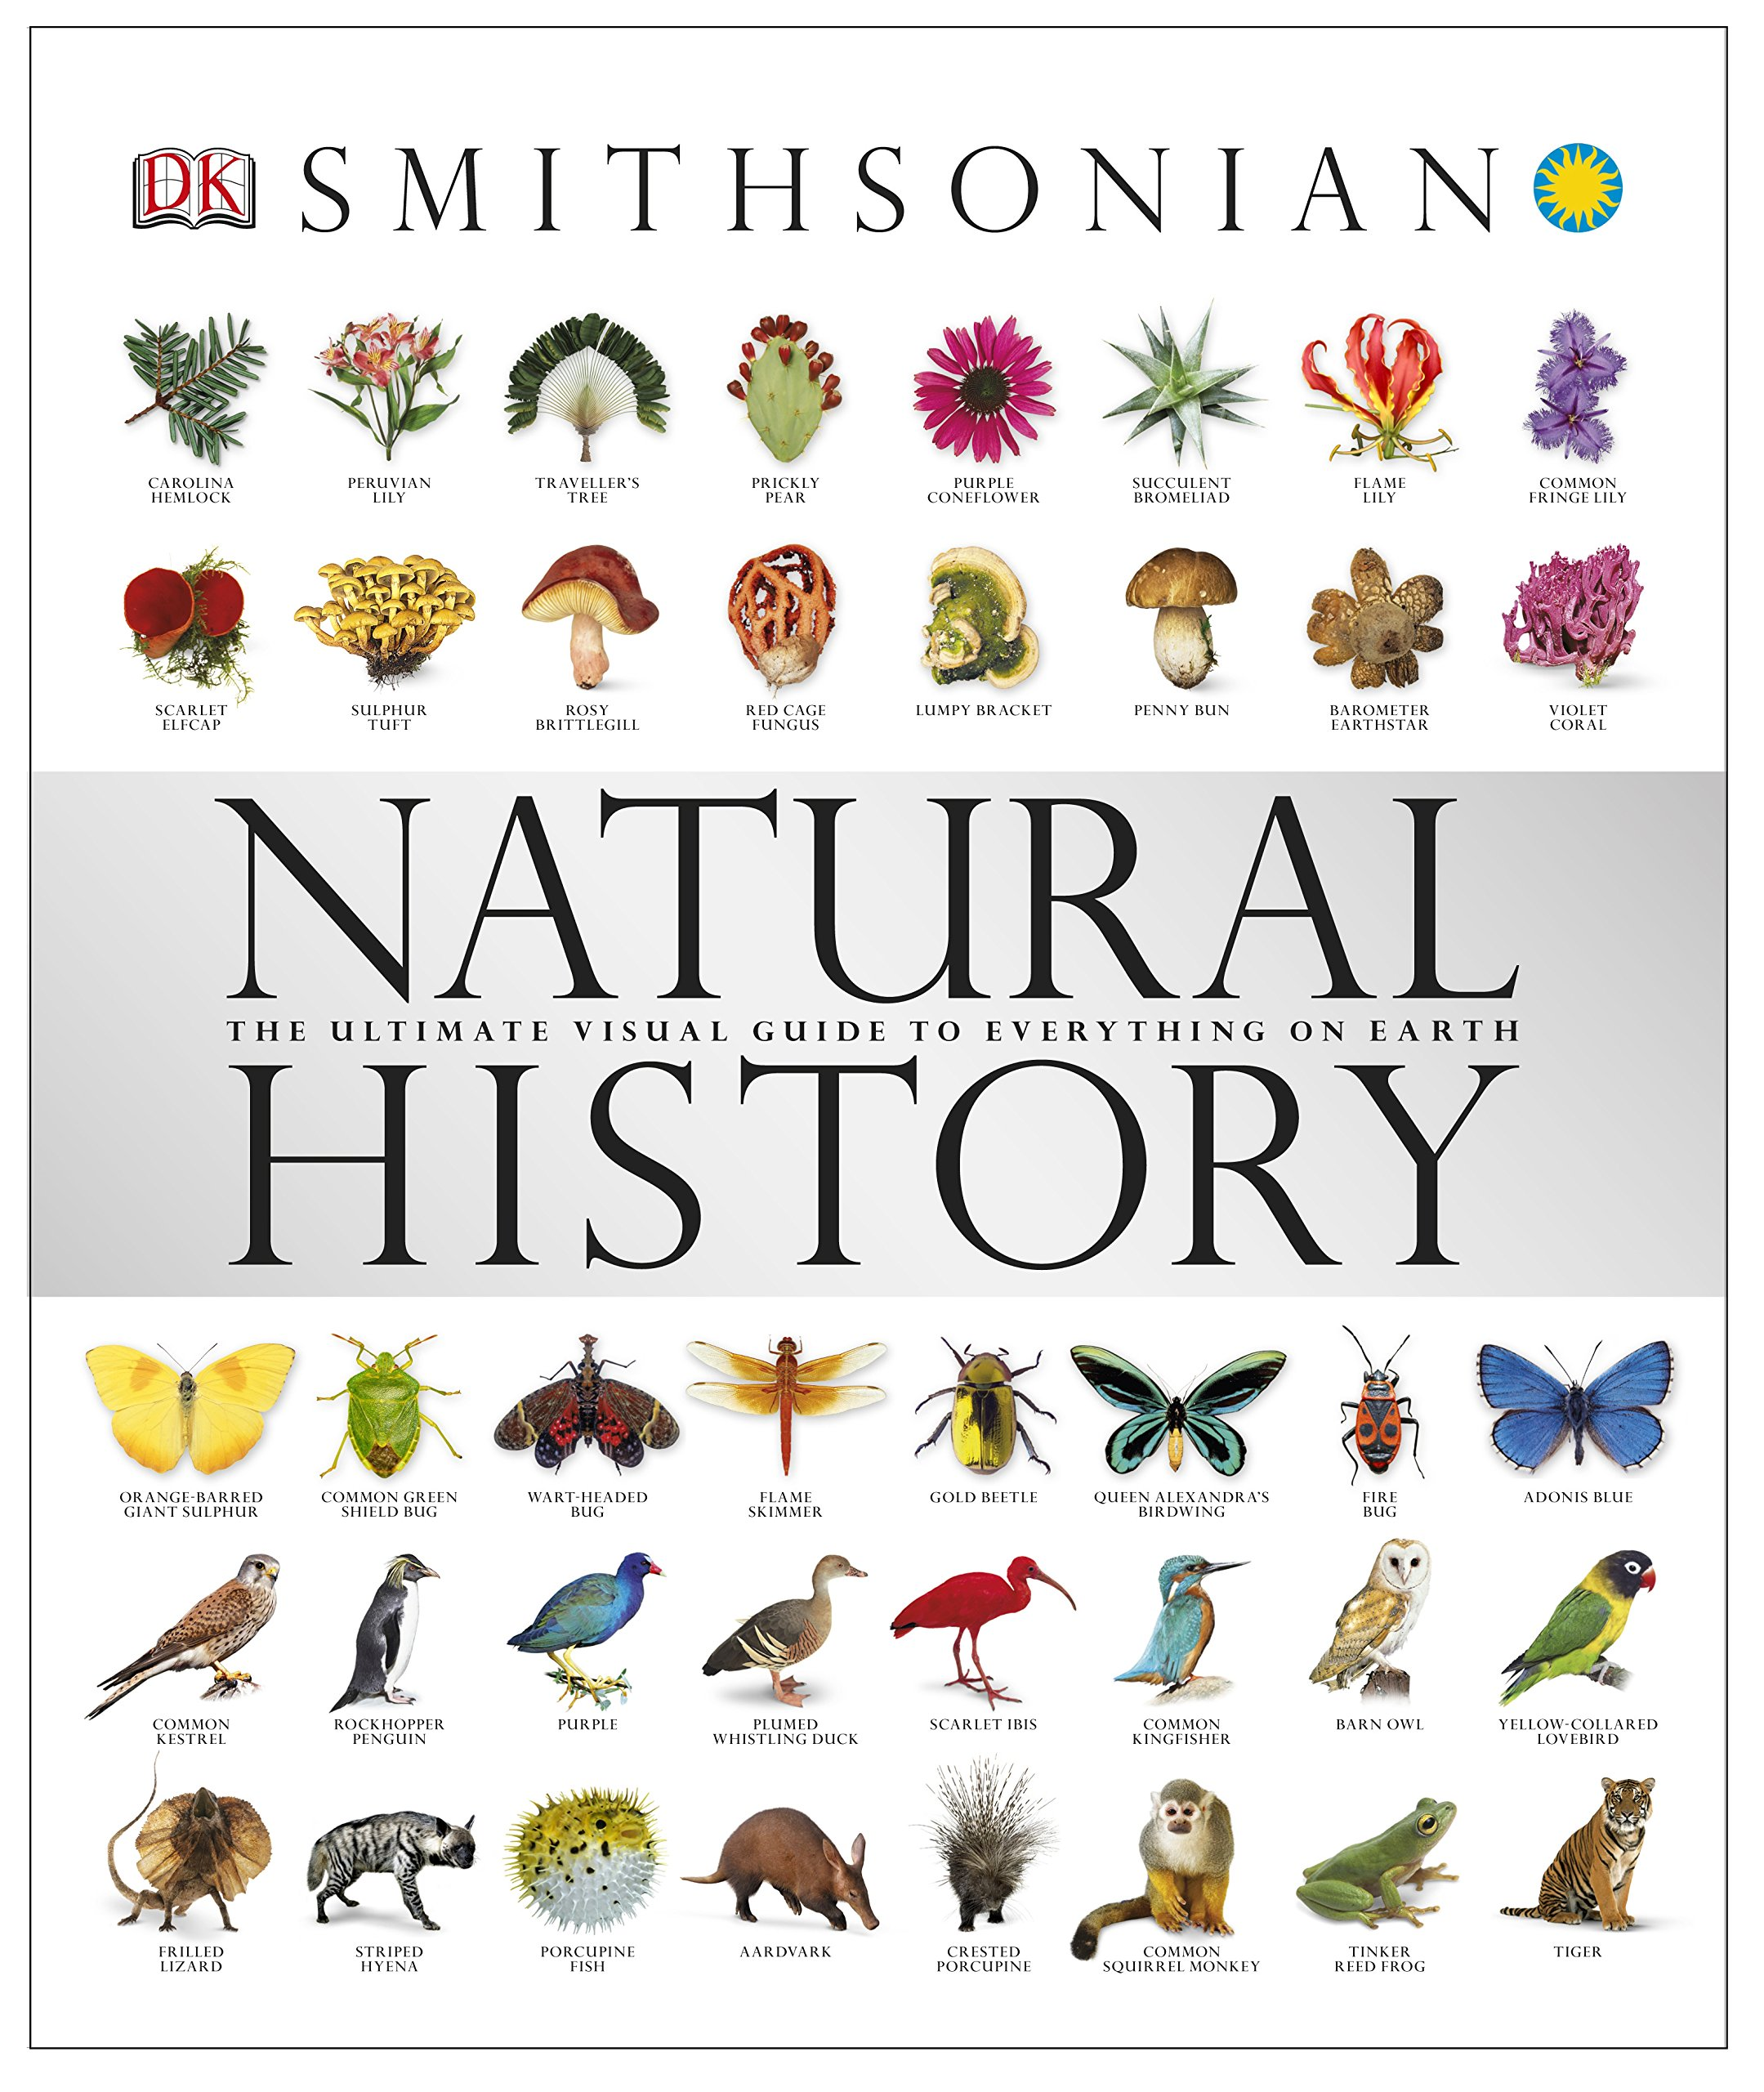 Natural History: The Ultimate Visual Guide to Everything on ... on am history si military history, smithsonian american history, az museum of natural history, chicago history, harvard natural history, kansas city museum of natural history, smithsonian black history, smithsonian food history, smithsonian world history, dinosaur history,